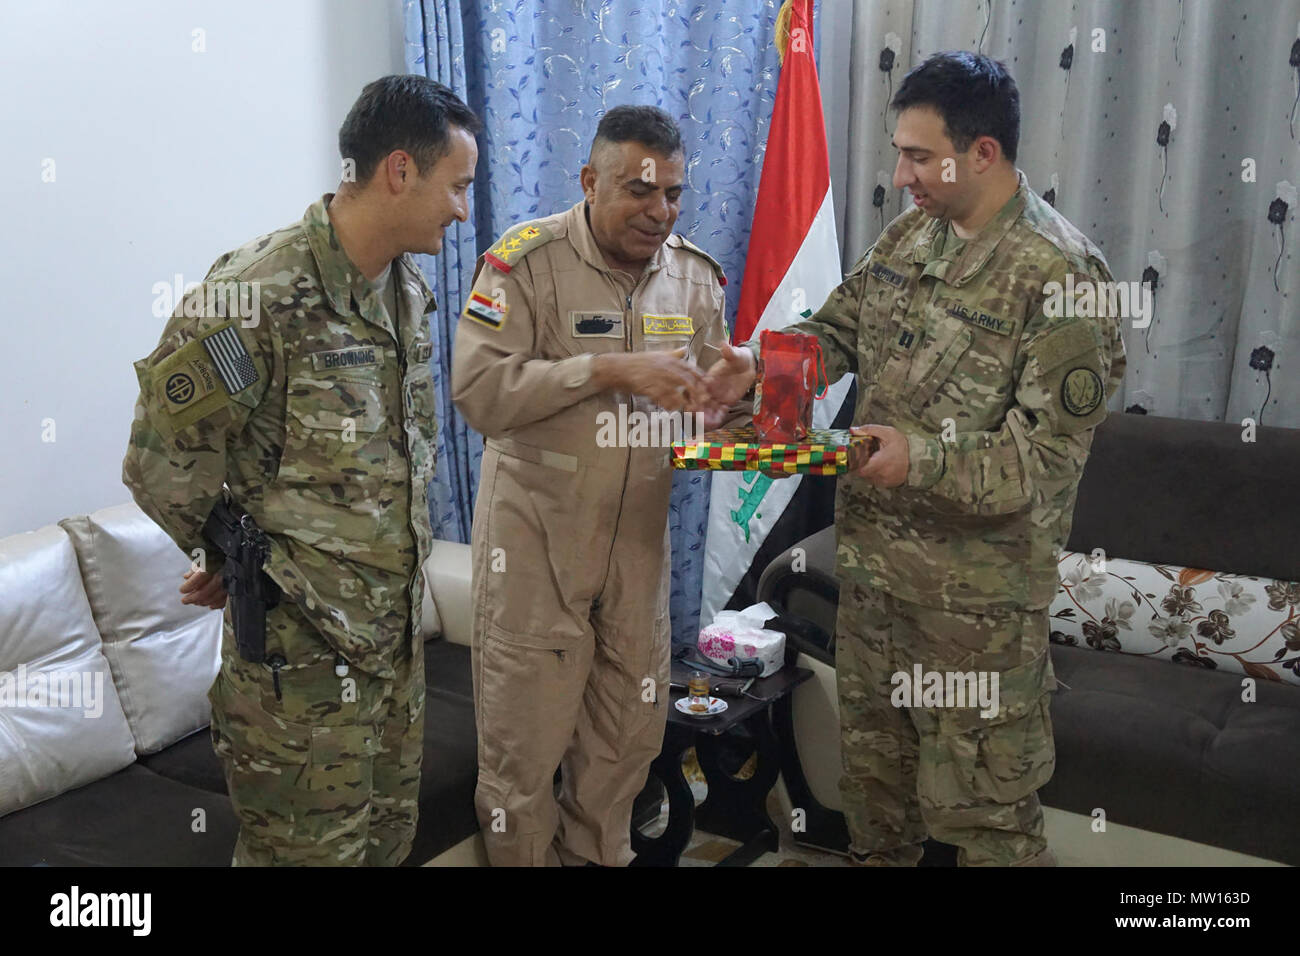 a75d92e6c44d6 U.S. Army Capt. Matt Kotowski (right) receives a present from the 9th Iraqi